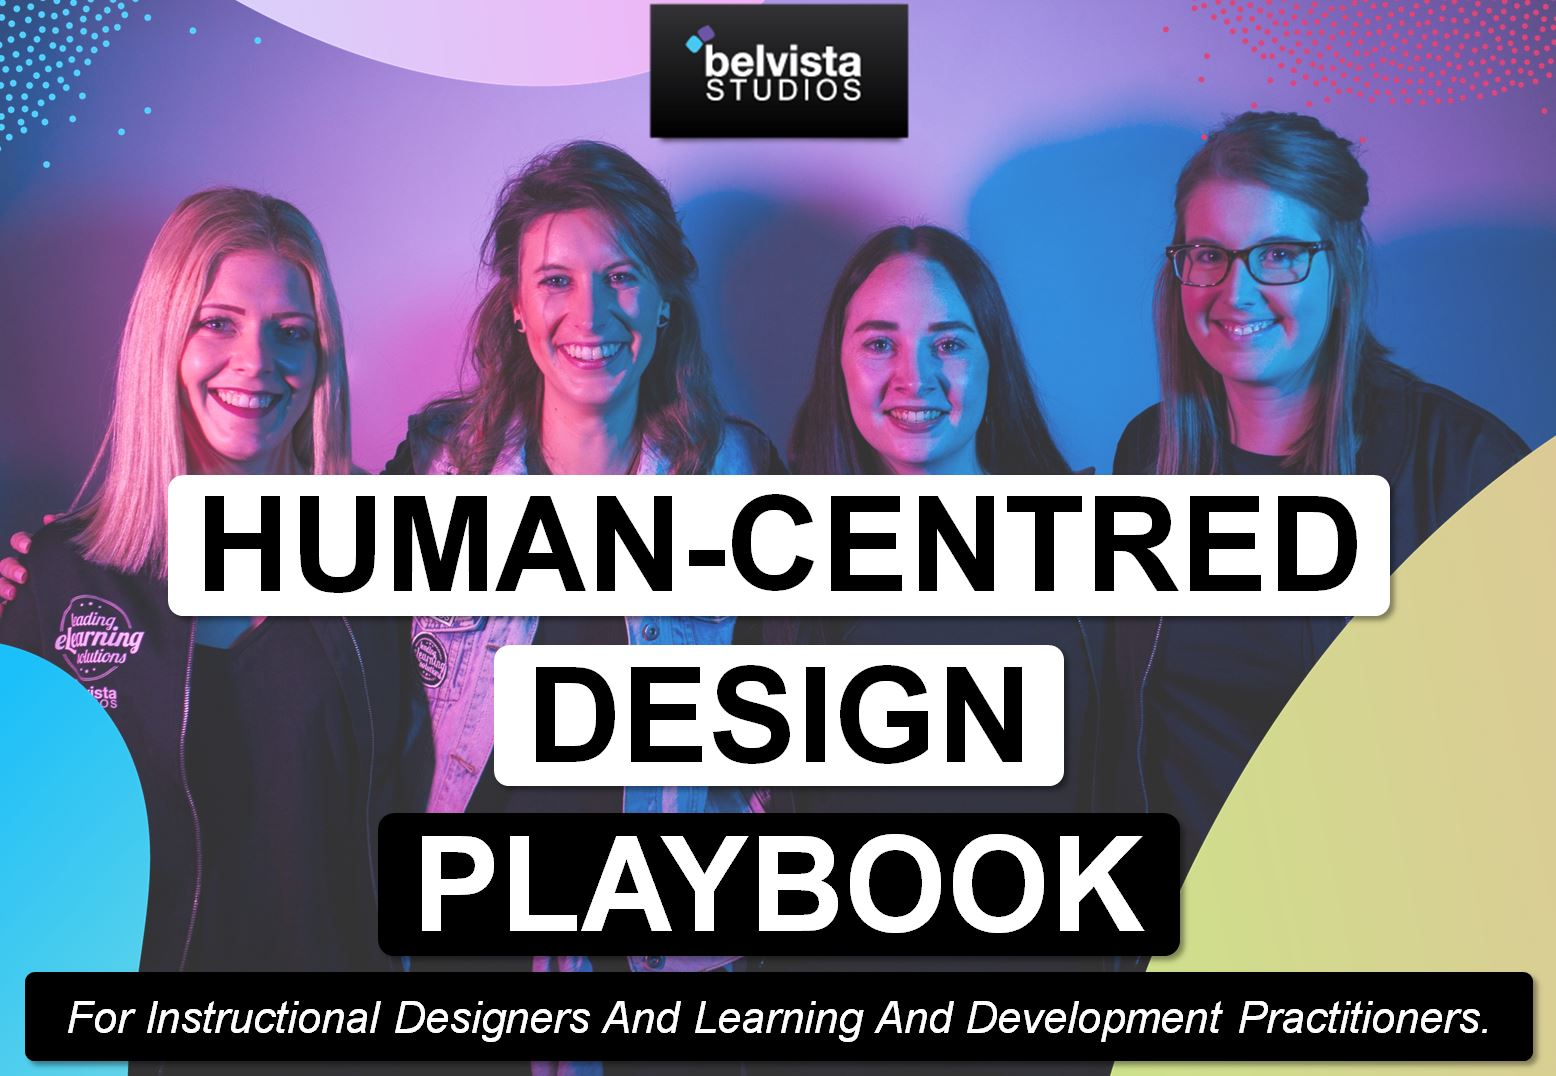 human centred design playbook for instructional designers and learnign and development practitioners belvista studios